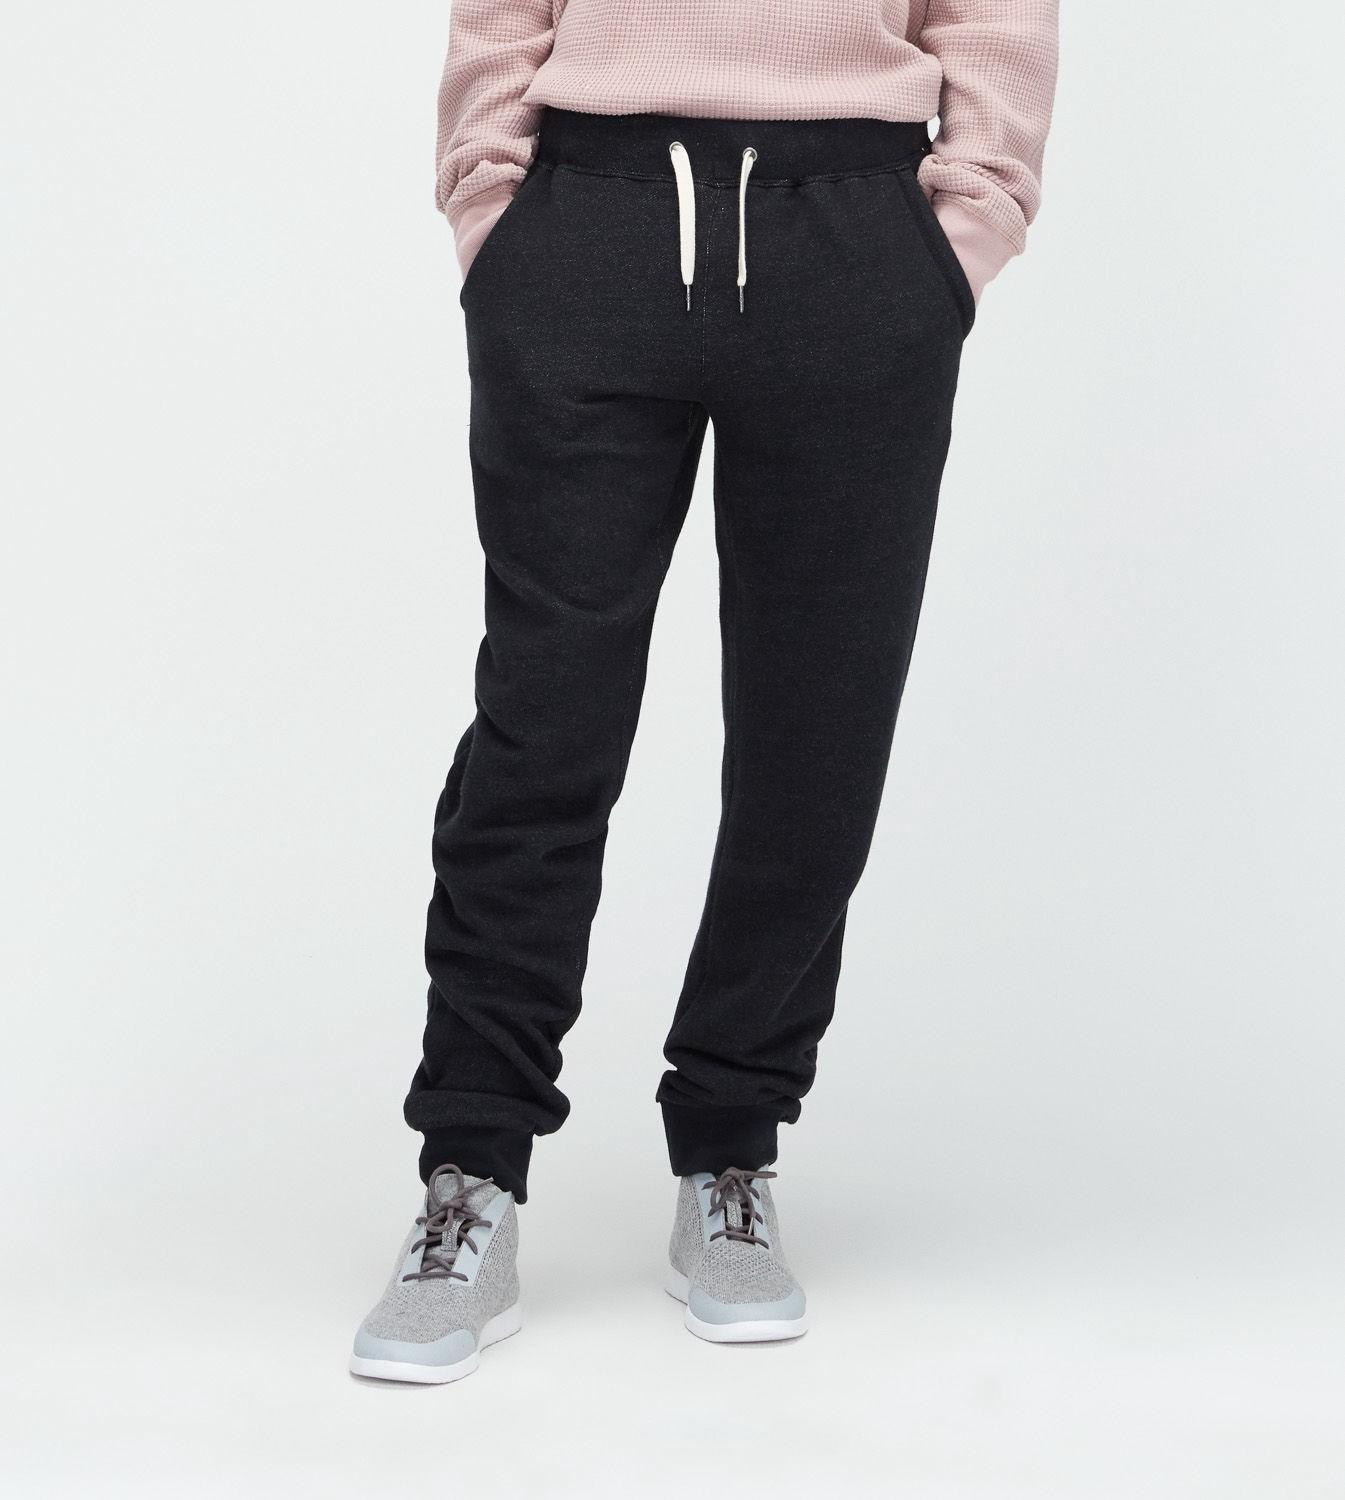 Ugg French Terry Jogger Pants In Black